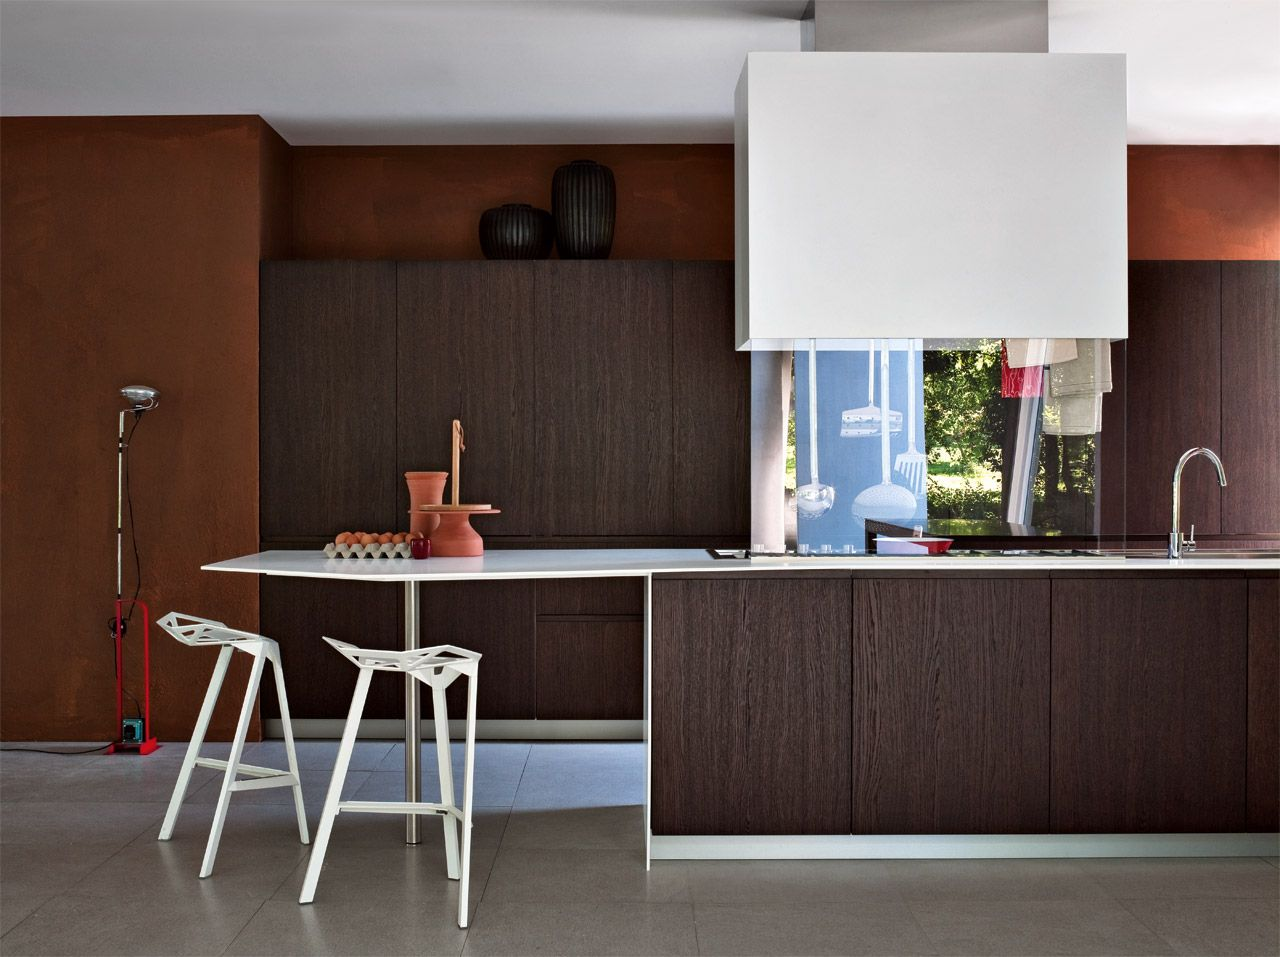 Design and modern kitchens inspirations elmar cucine home in